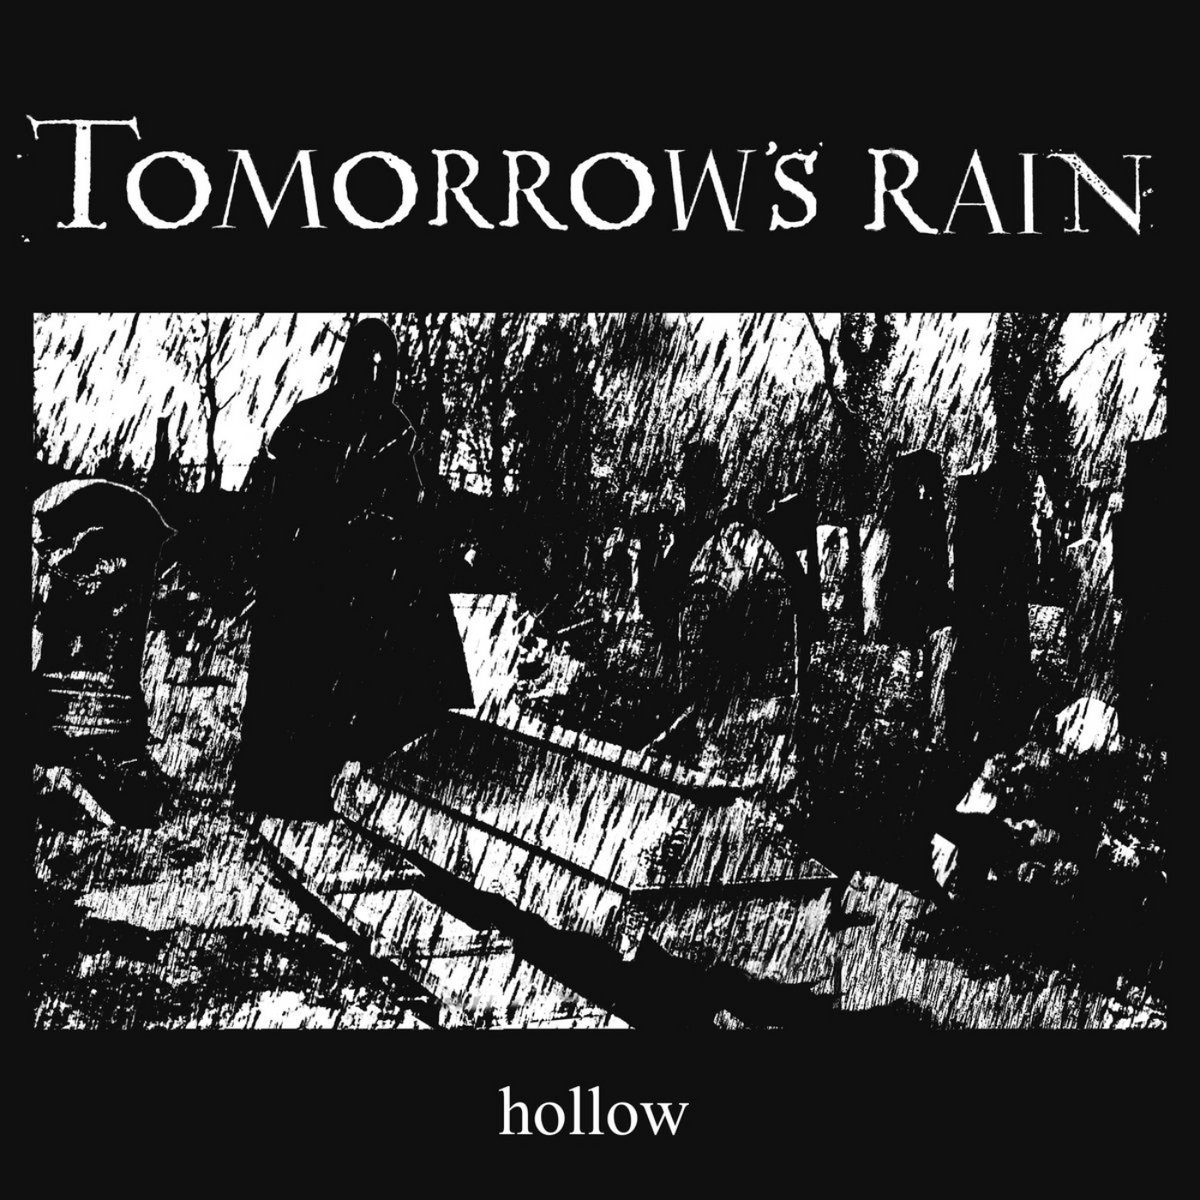 tomorrows rain hollow